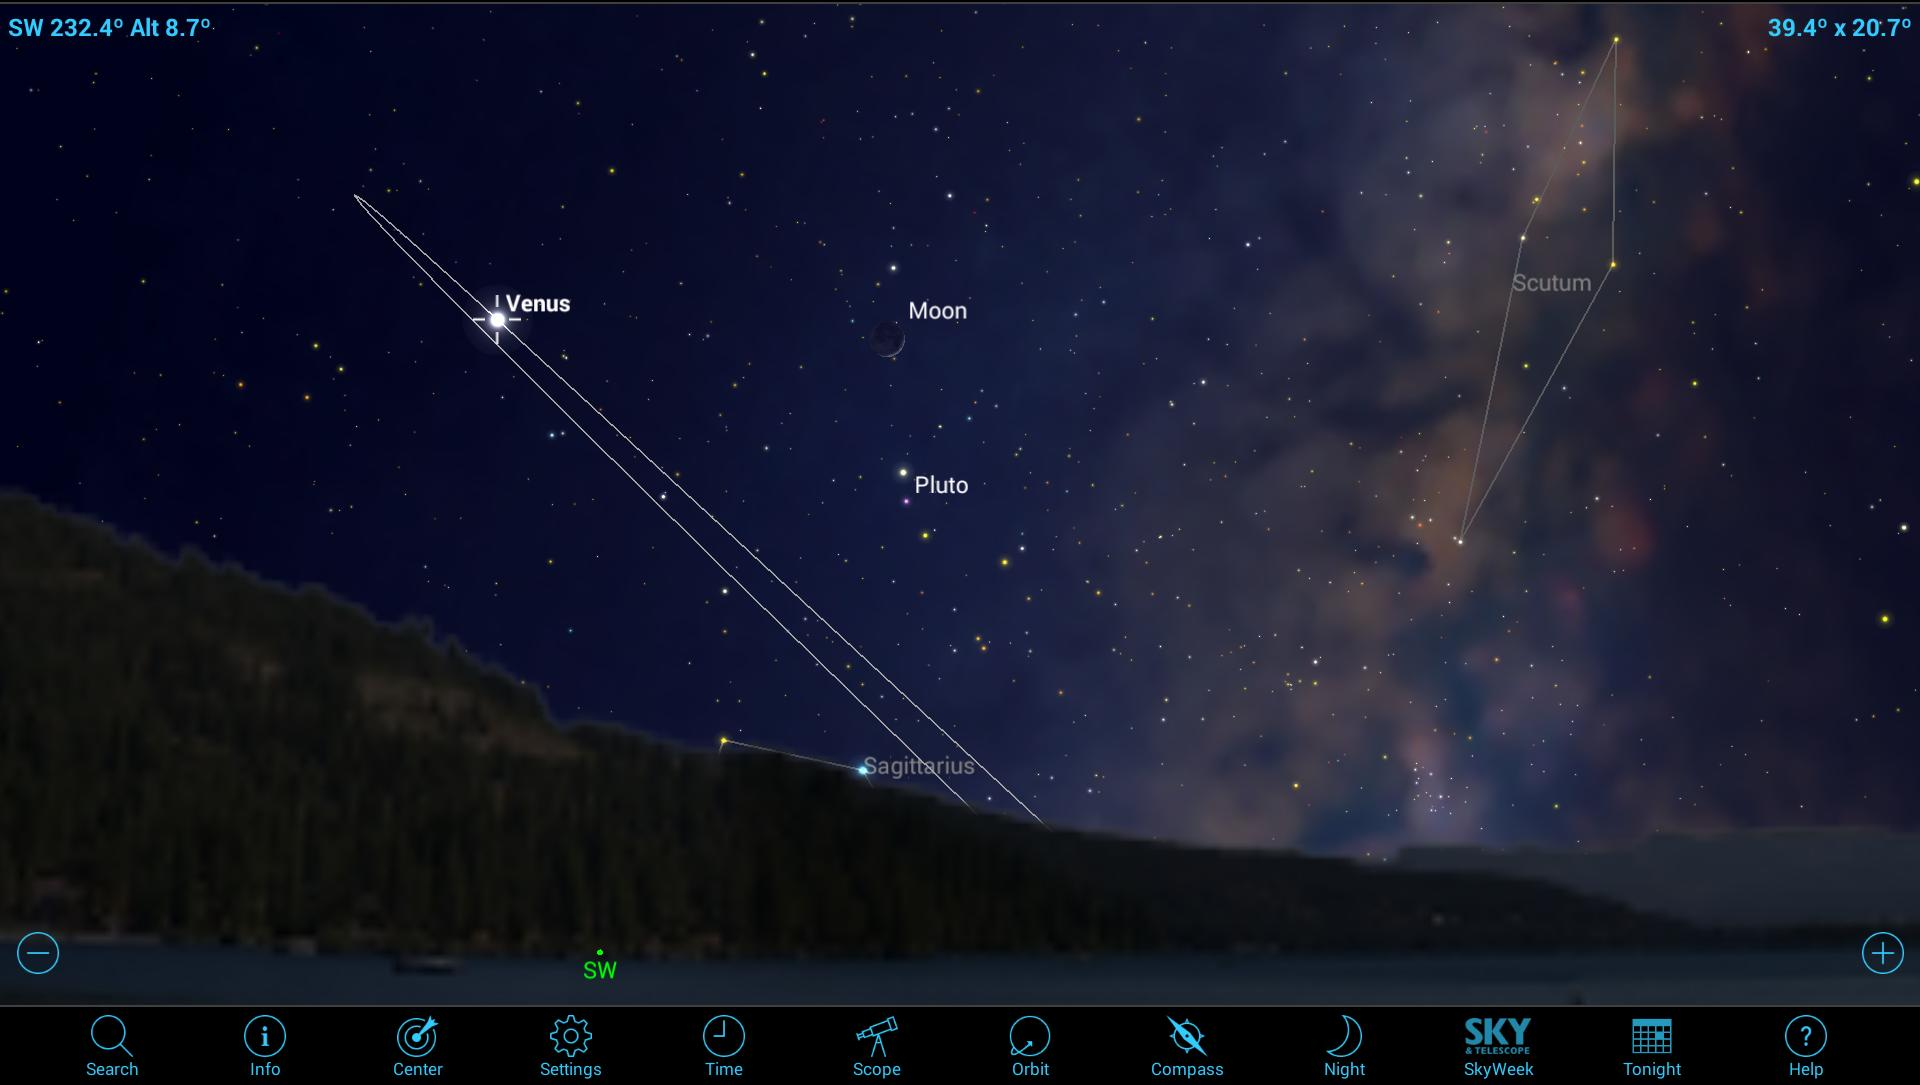 Admiring the Beauty of Venus with Mobile Astronomy Apps